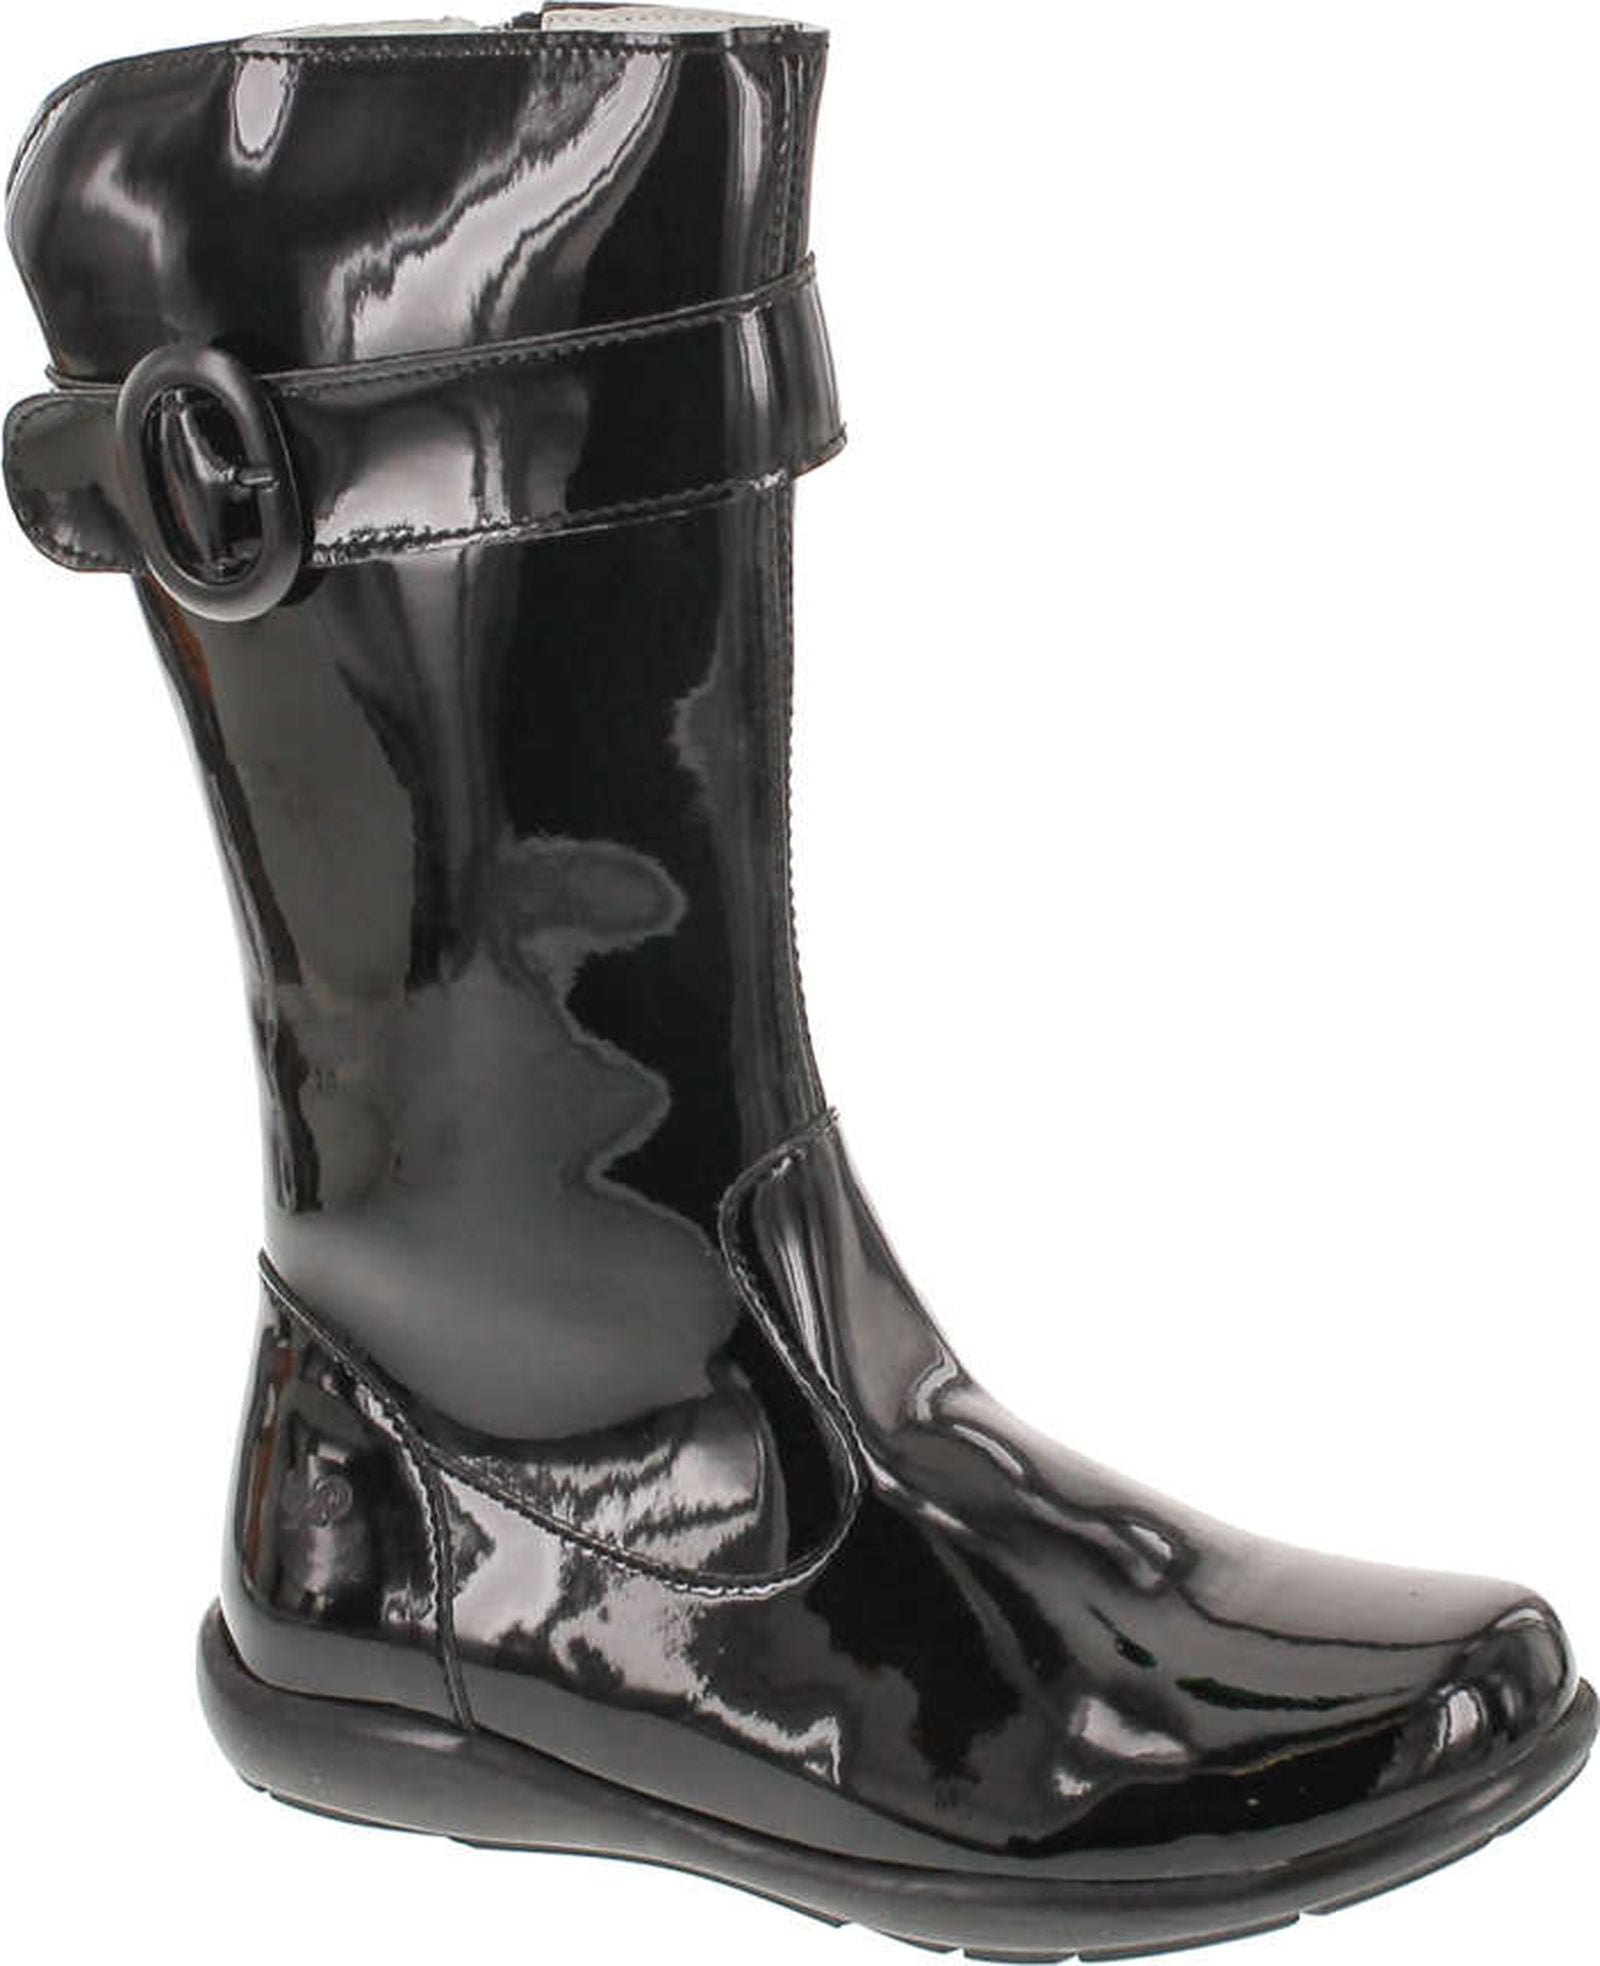 Primigi Girls 8151 Fashion Designer Boots by Primigi